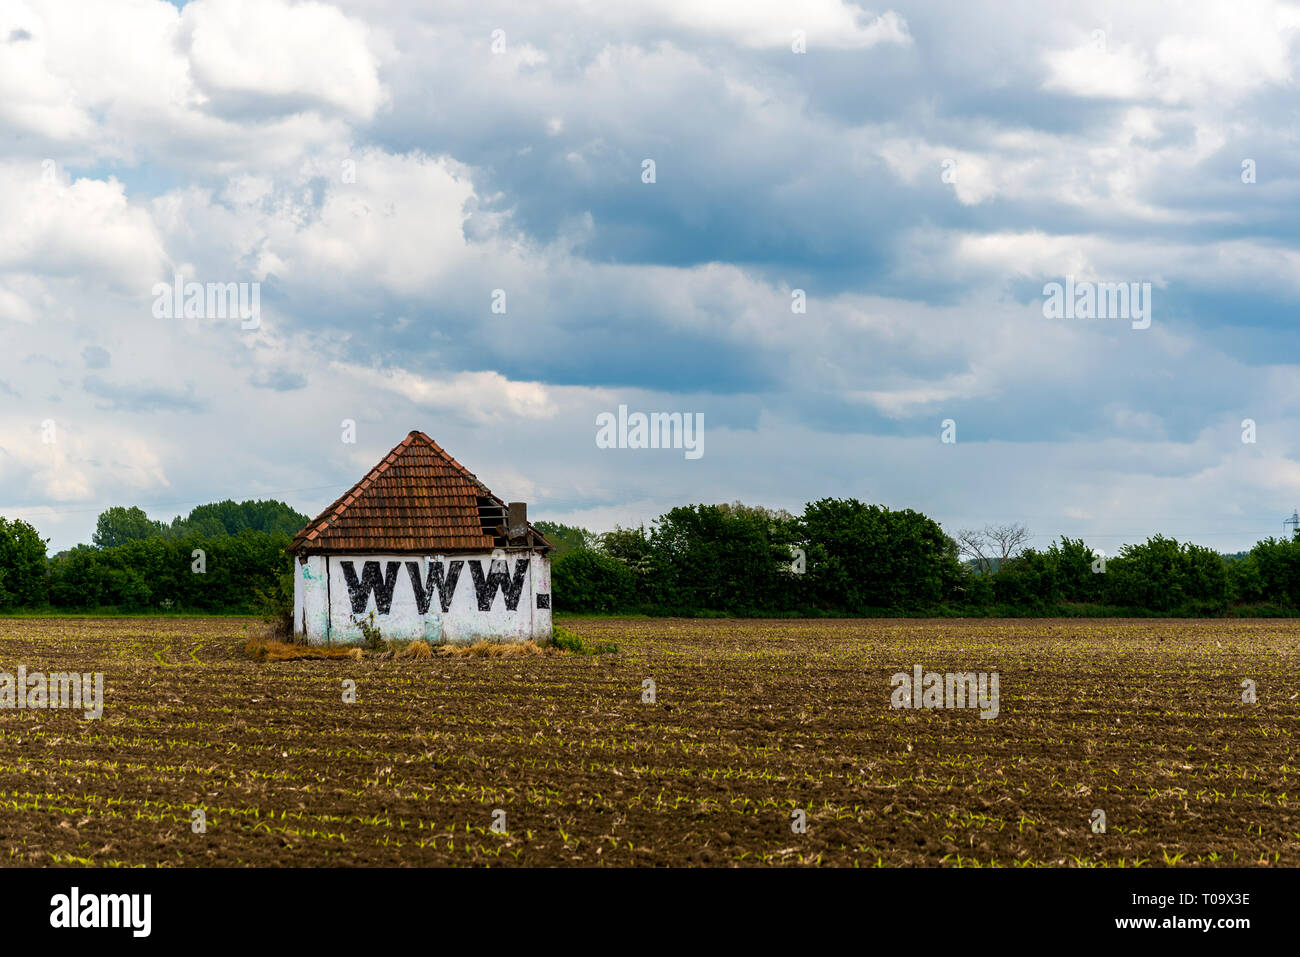 world wide web barn, in the middle of a field - Stock Image